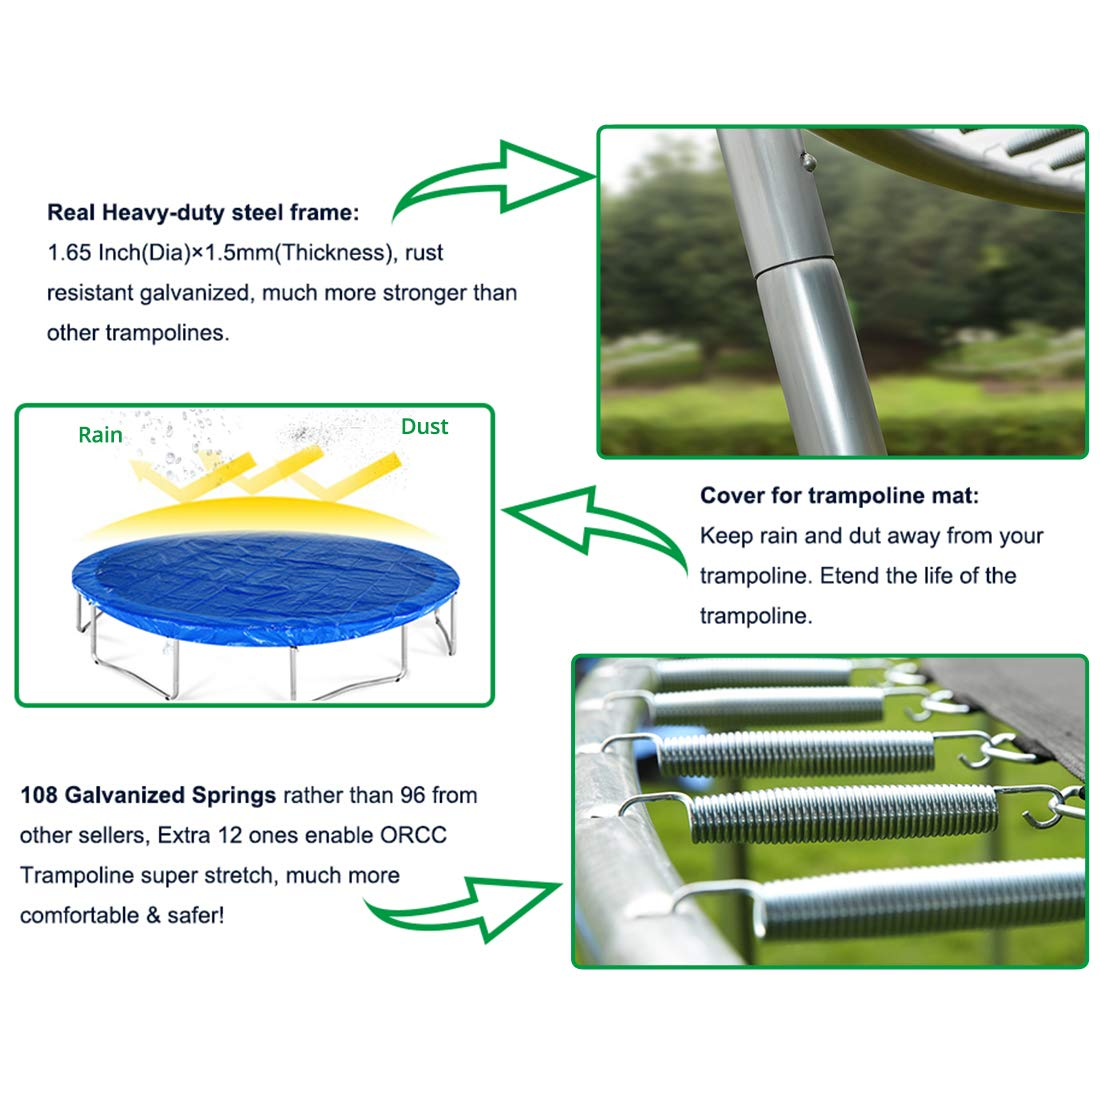 ORCC New Upgrade 15 14 12 10 FT Trampoline with Safety Enclosure Net Wind Stakes Rain Cover Ladder,Outdoor Trampoline with TUV Certificated,Best Gift for Kids by ORCC (Image #5)